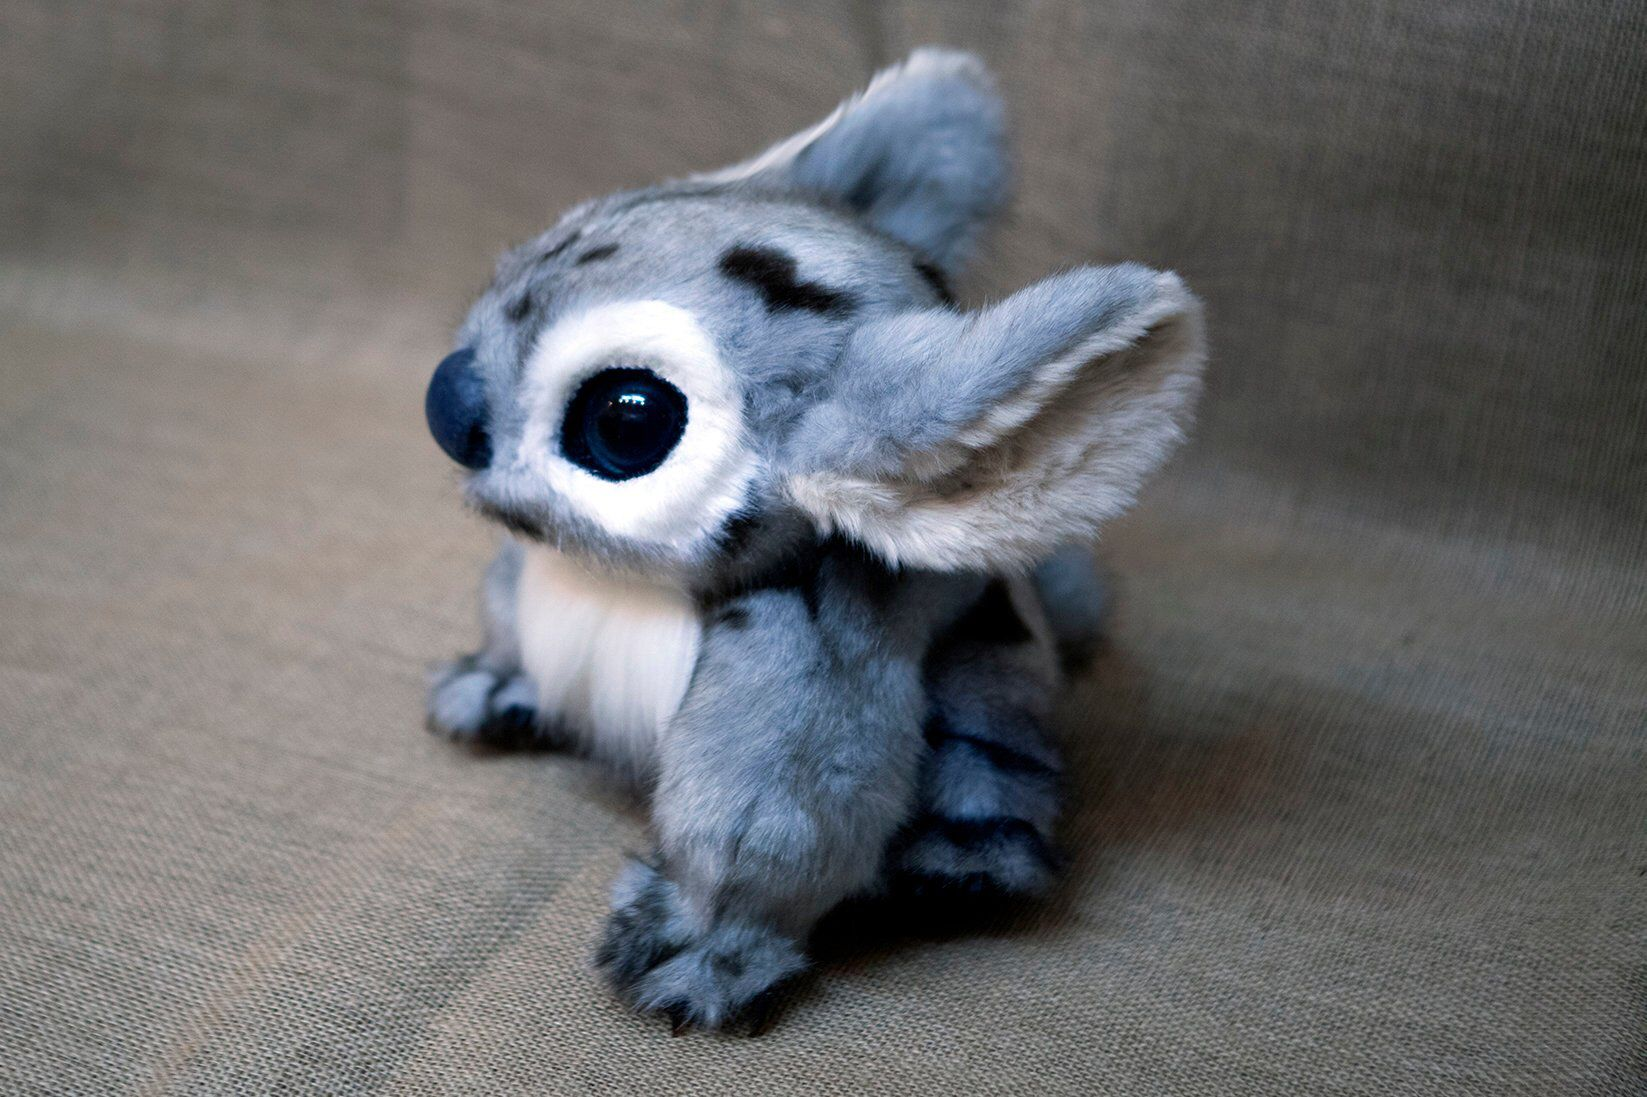 Handmade Realistic Fantasy Beast Inspired By Stitch From Disney S Lilo And Stitch By Nafantano On Ets Cute Fantasy Creatures Fantasy Beasts Fantasy Creatures